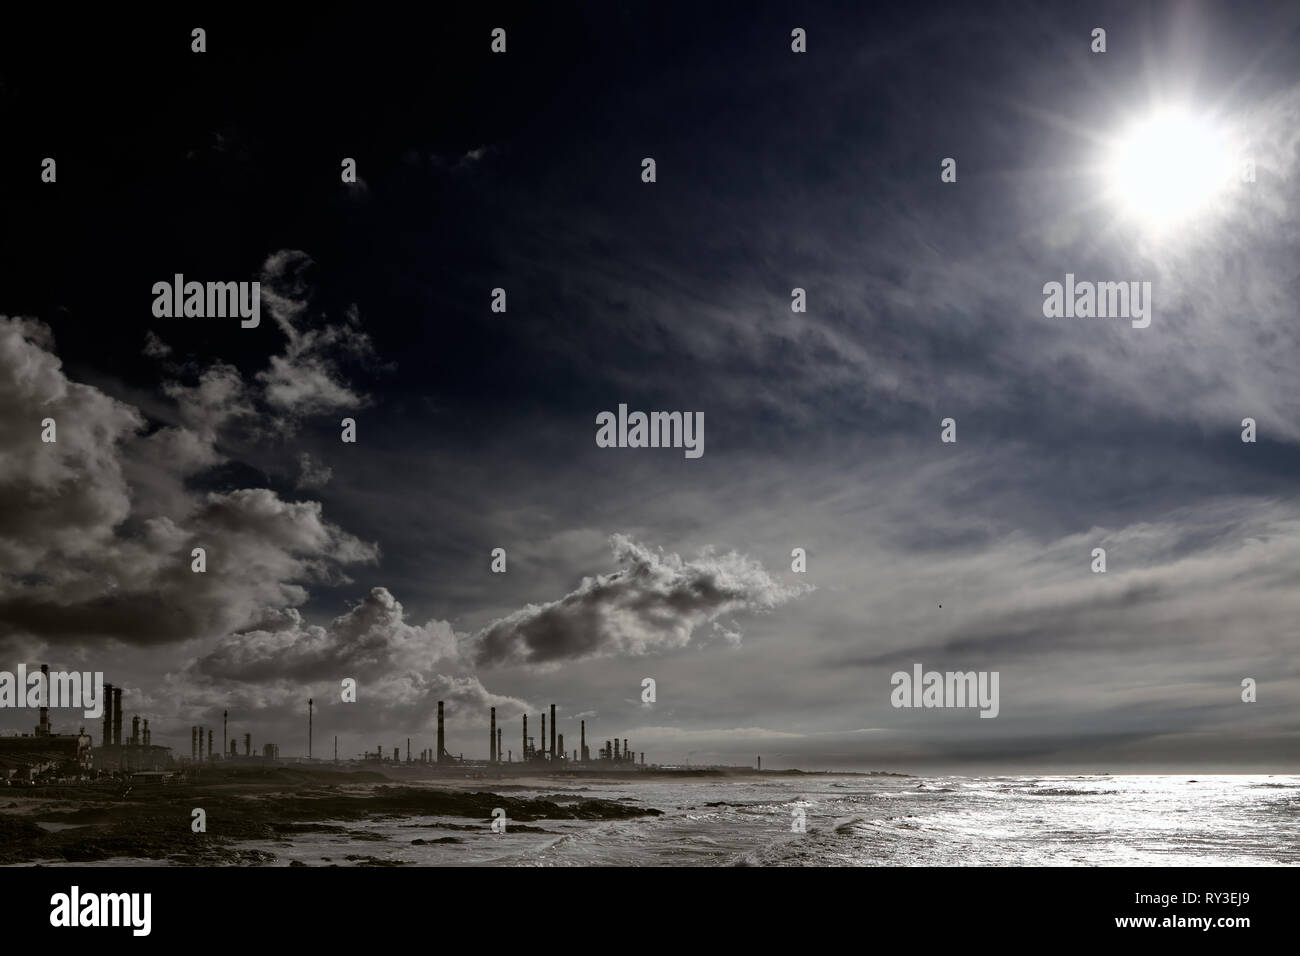 Oil refinery and powerplant near the sea with dramatic sky - Stock Image